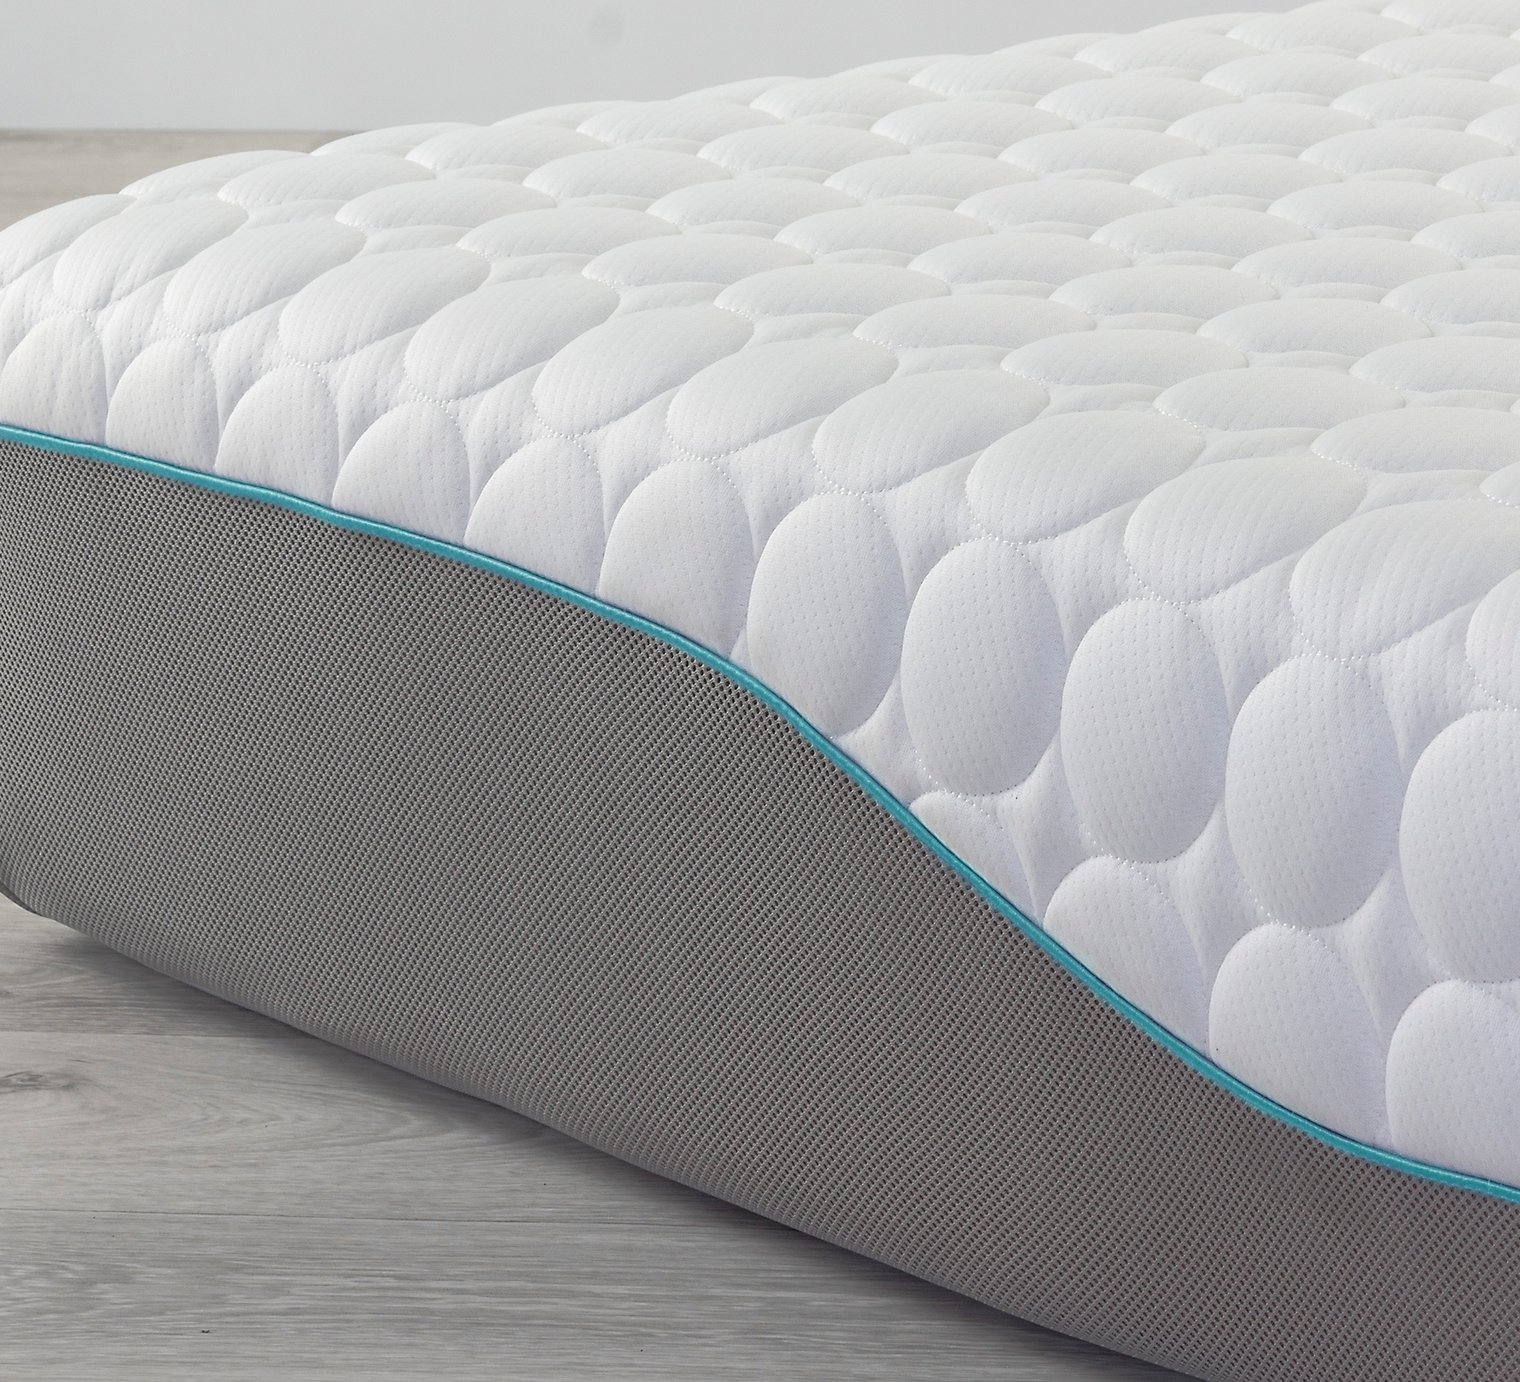 Mammoth Rise Ultimate Kingsize Mattress